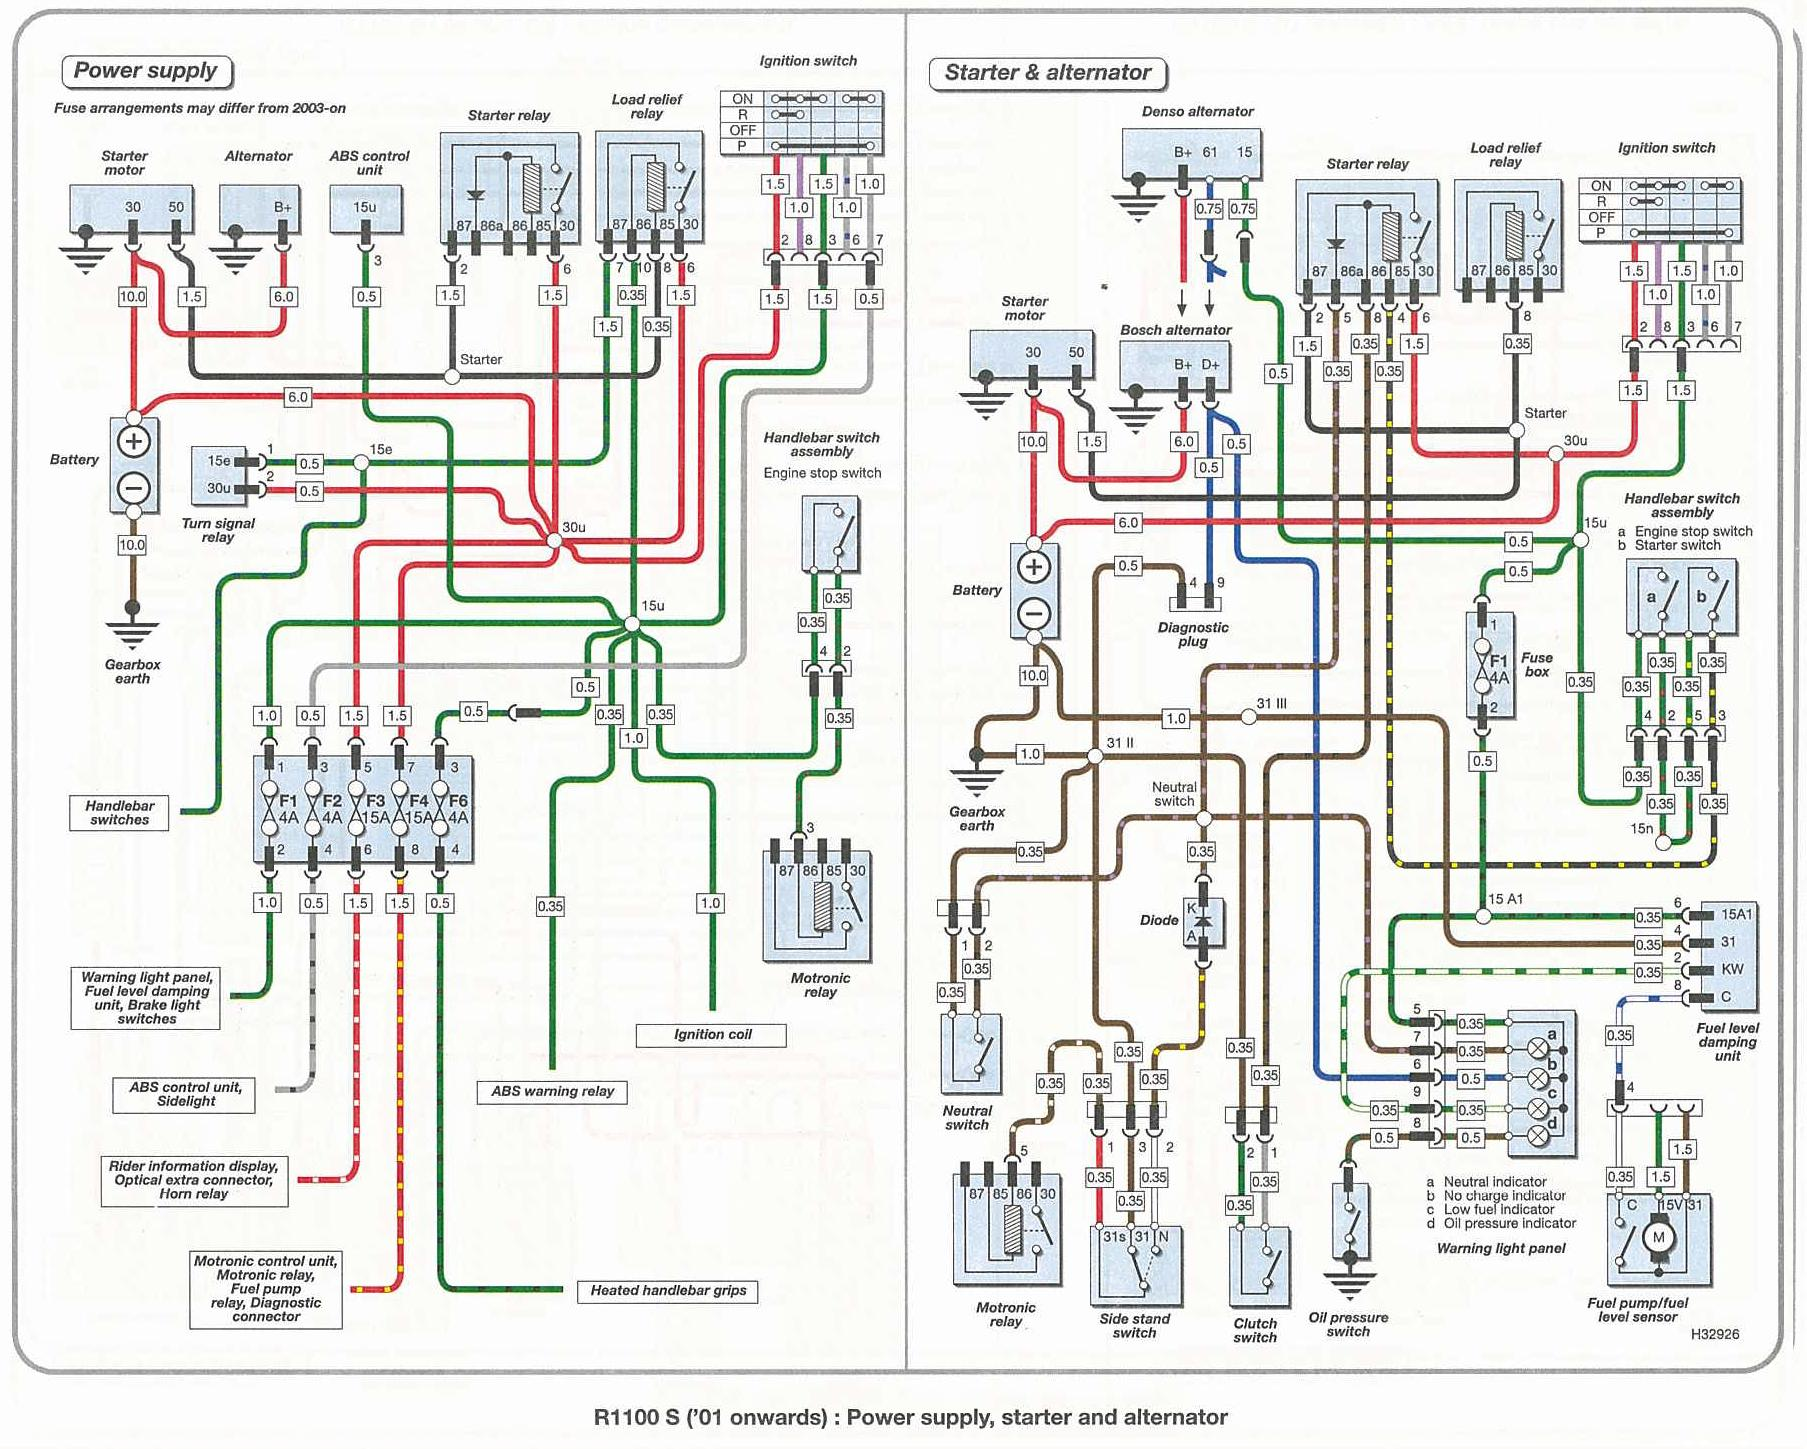 wiring05 bmw r1150gs wiring diagram bmw wiring diagrams instruction bmw r1150gs wiring diagram at readyjetset.co